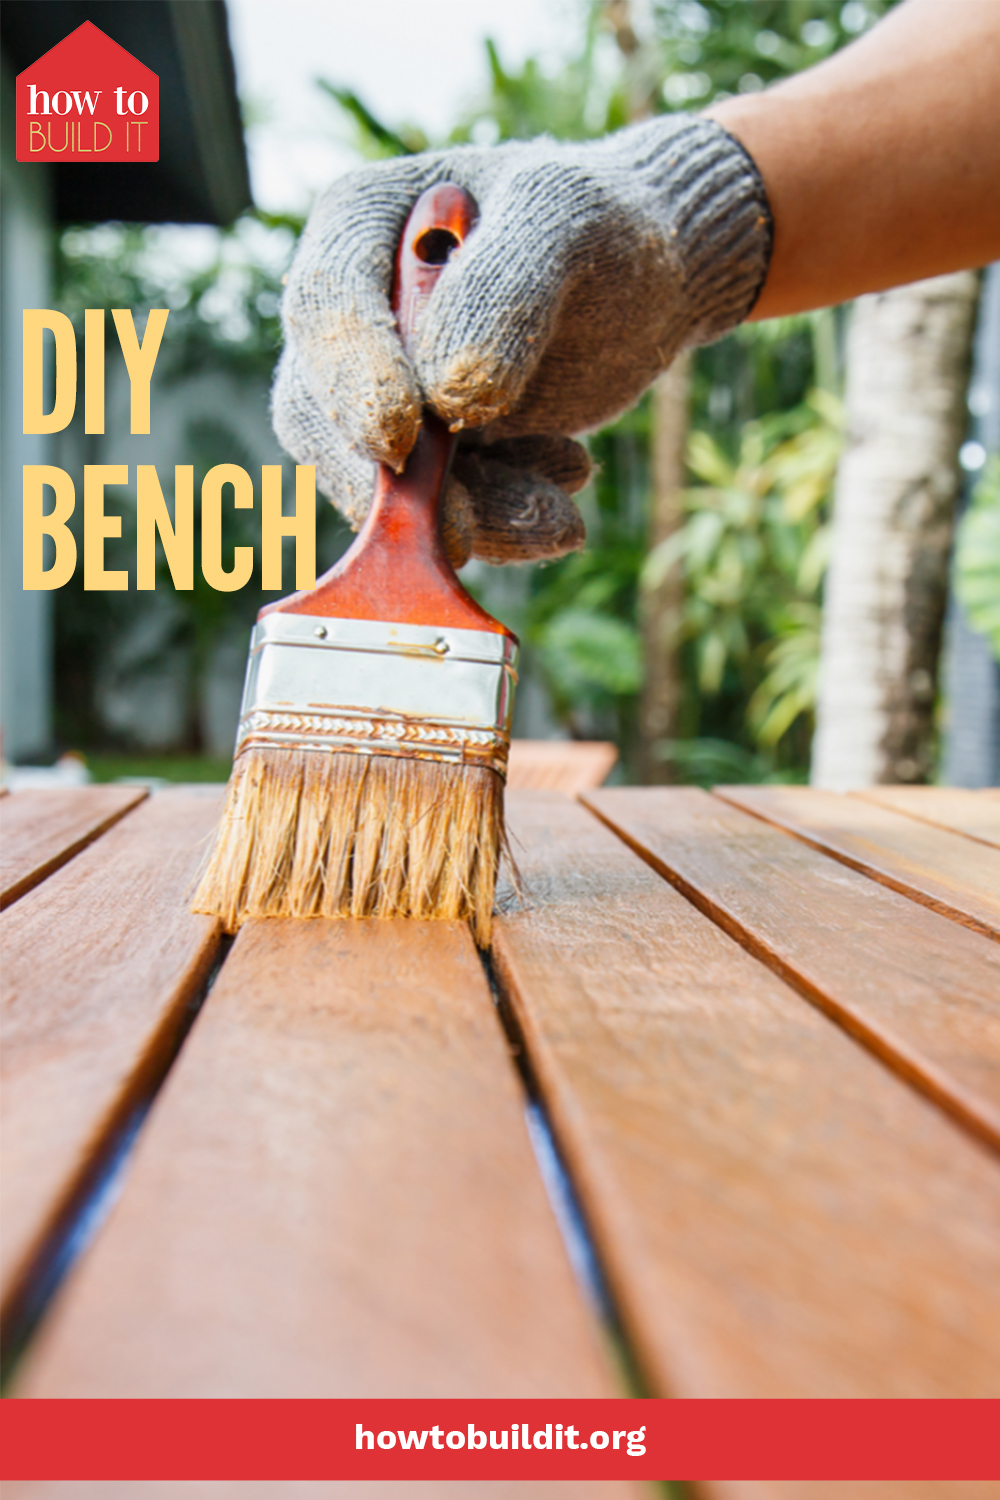 Make your entry way or porch look incredible with this easy tutorial for a DIY bench inspired by an Ana White tutorial. This beauty costs less than $100 to make and even less if you have a scrap pile. Check it out today! #furnitureprojects #diy #howtobuilditblog